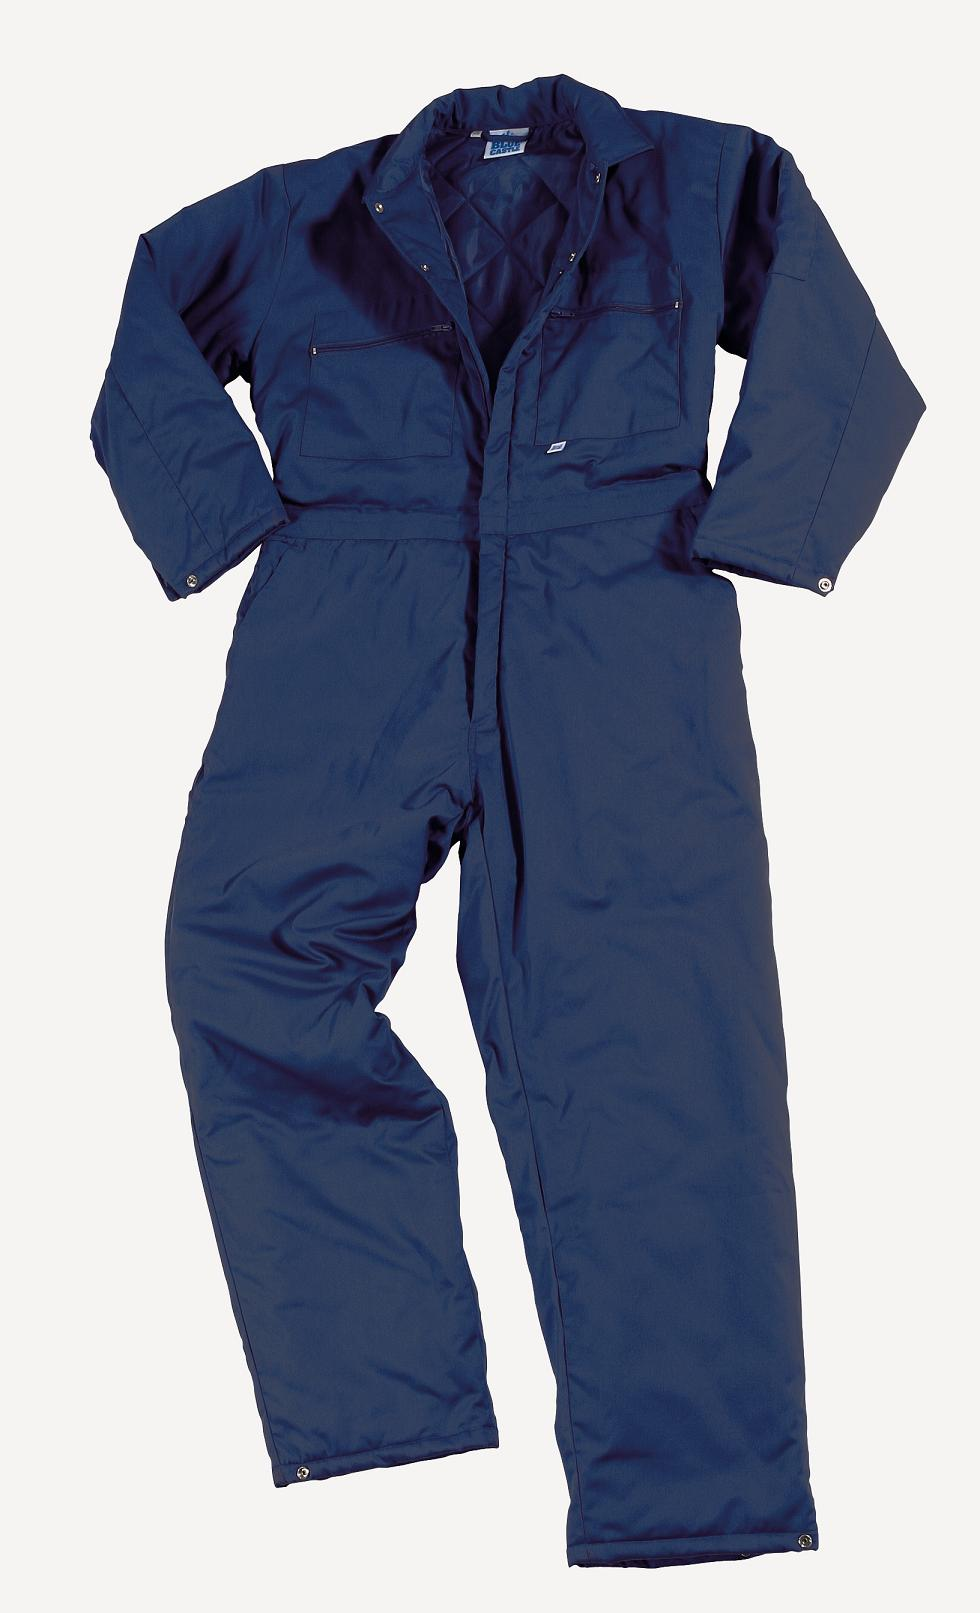 bodyguard-Coveralls-Quilted-Boiler-Suit-240GSM